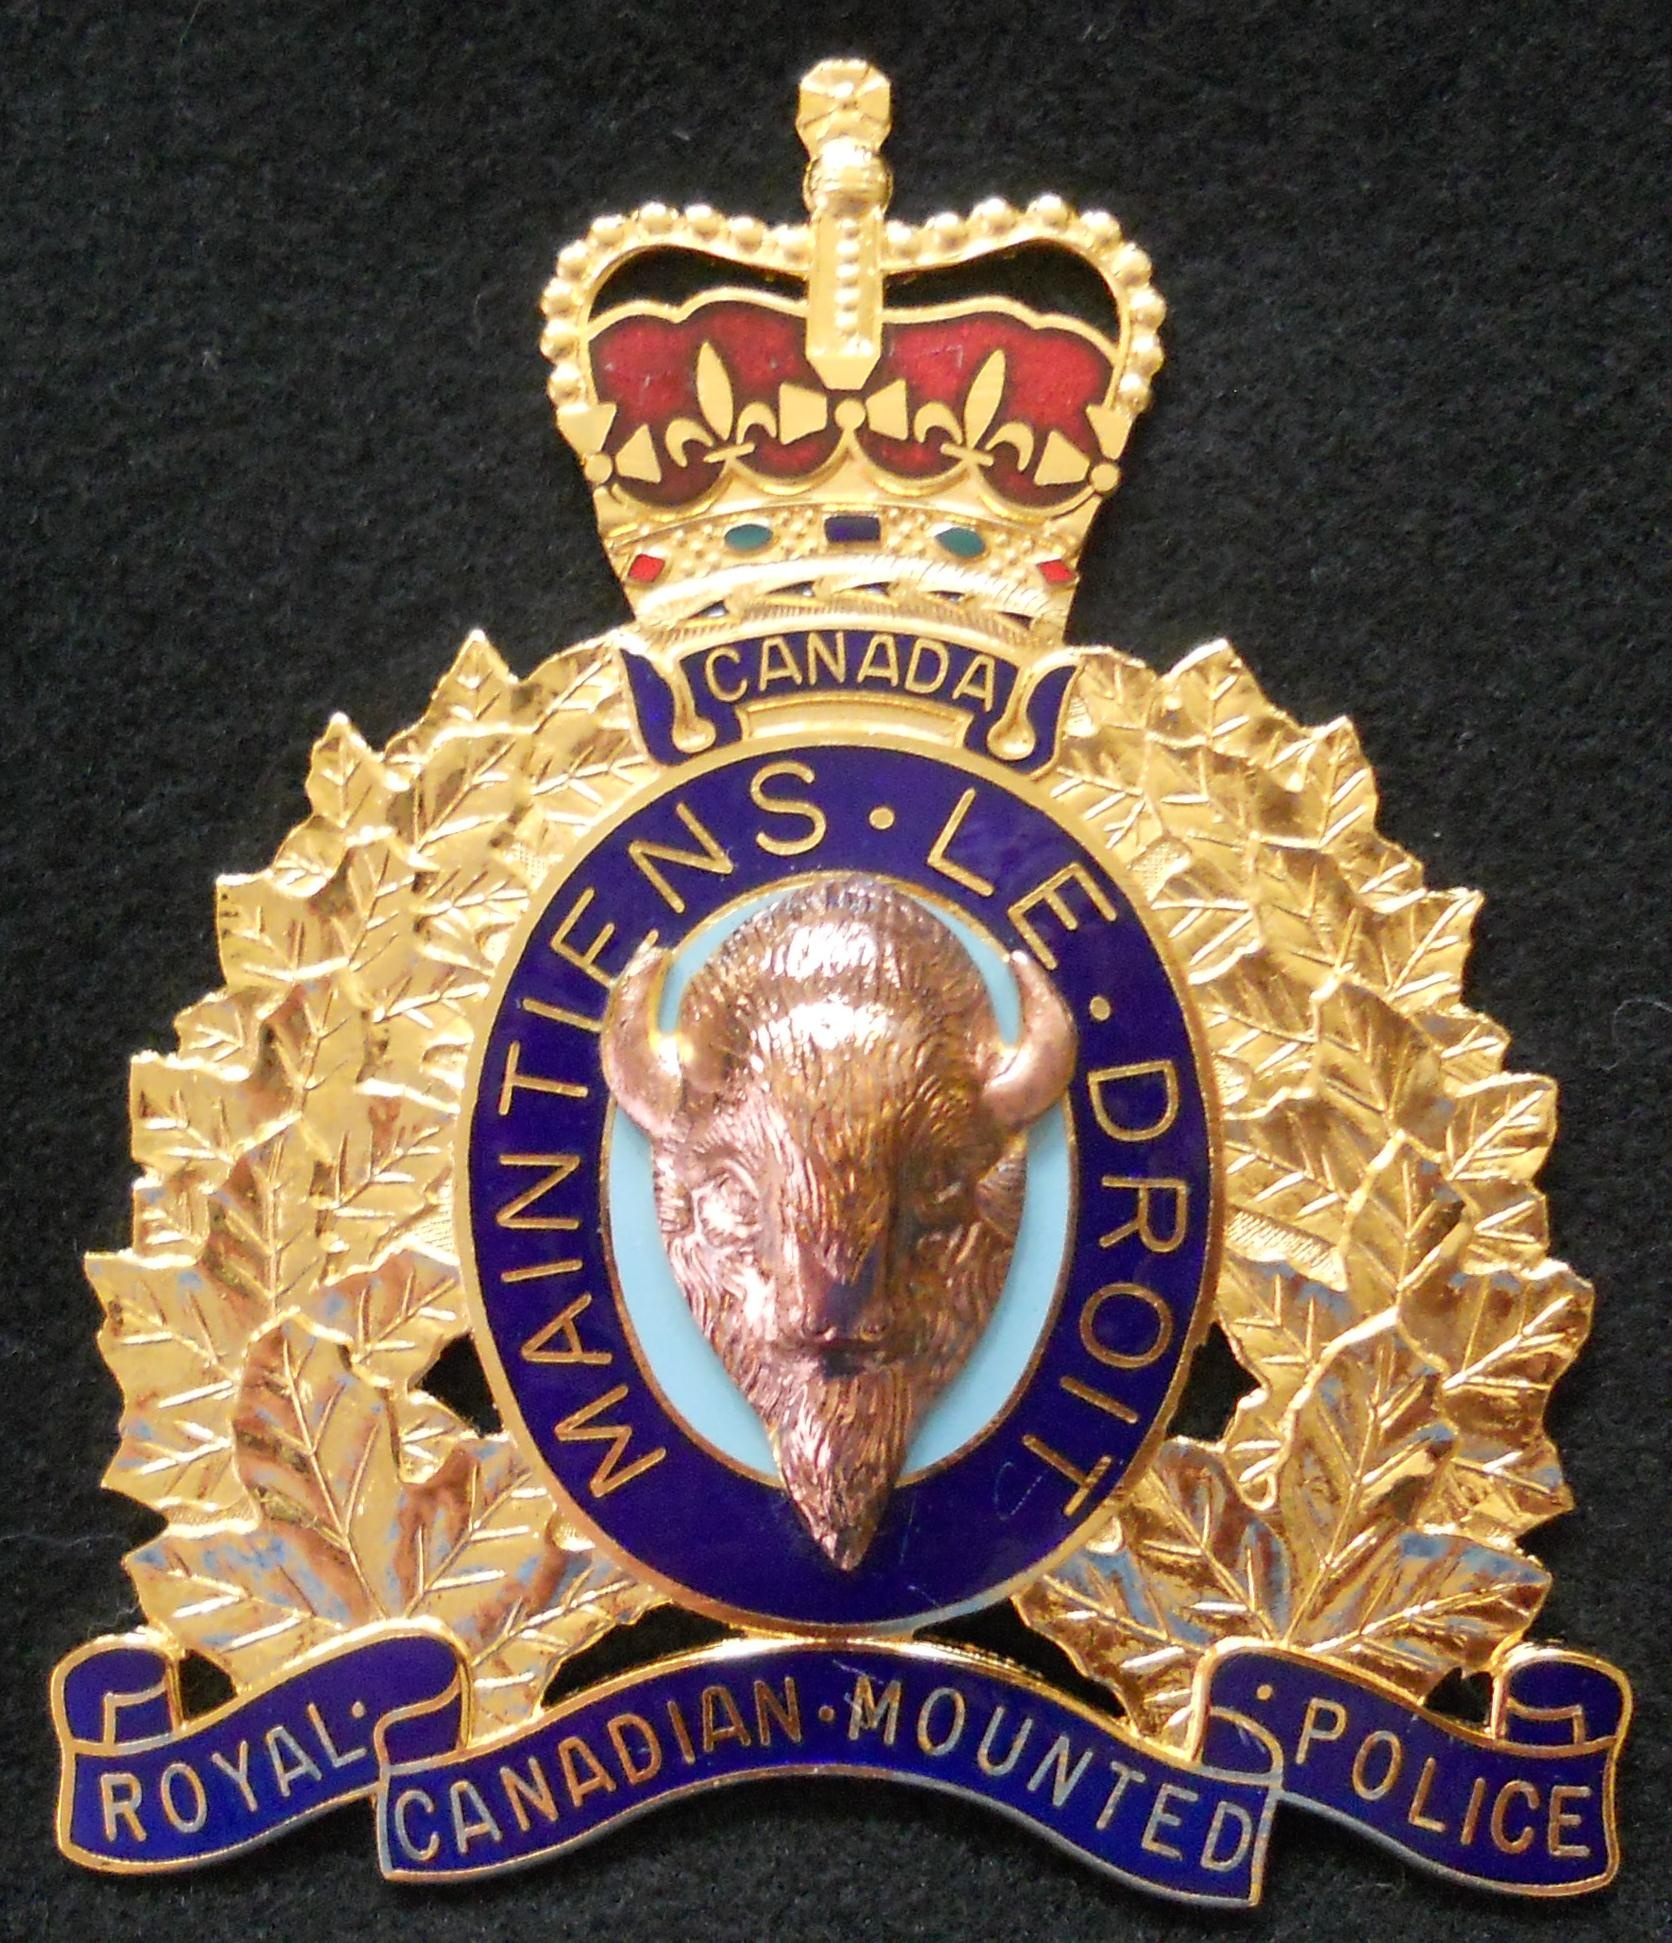 TWO MEN CHARGED FOLLOWING ATV THEFT NEAR VIKING